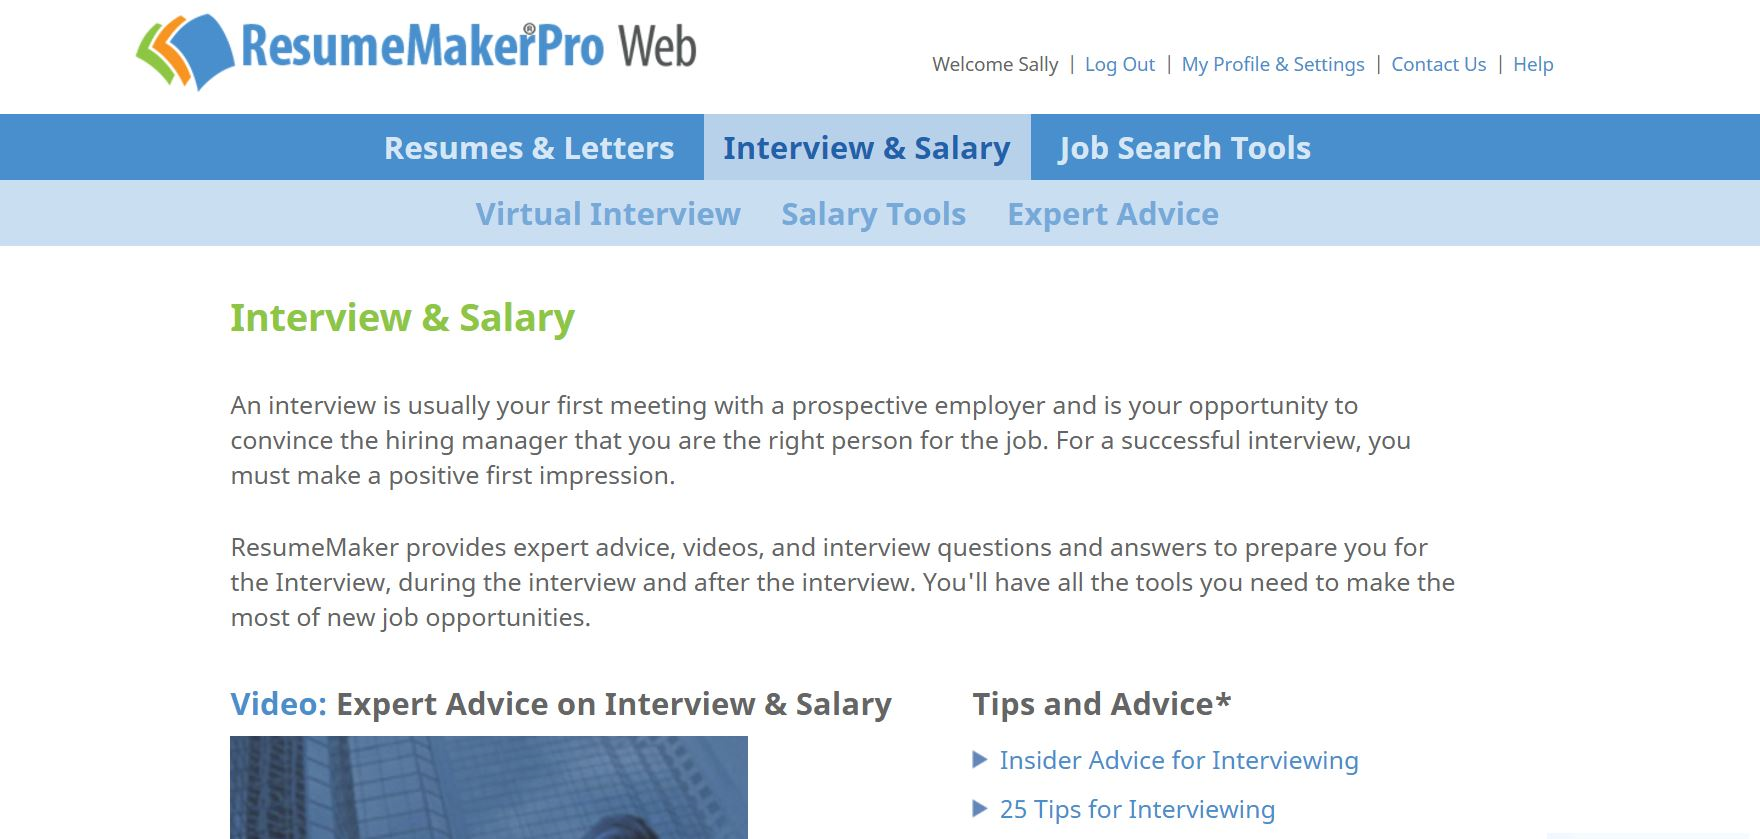 ResumeMakerPro Web - Annual Subscription Screenshot